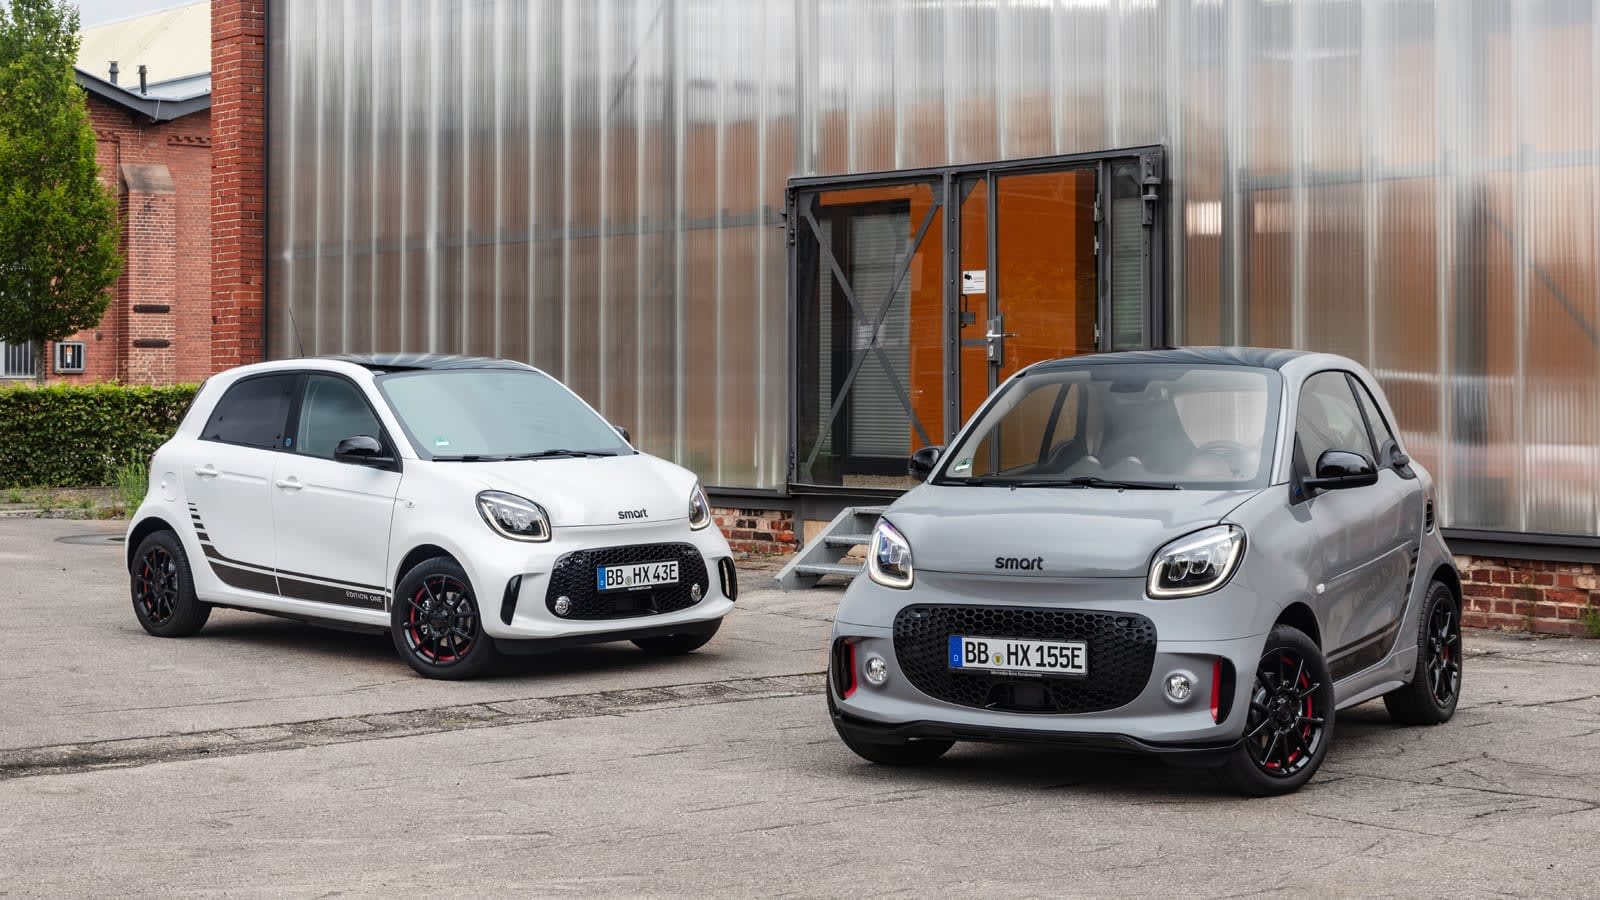 Smart is the first car brand to switch to an all-EV lineup